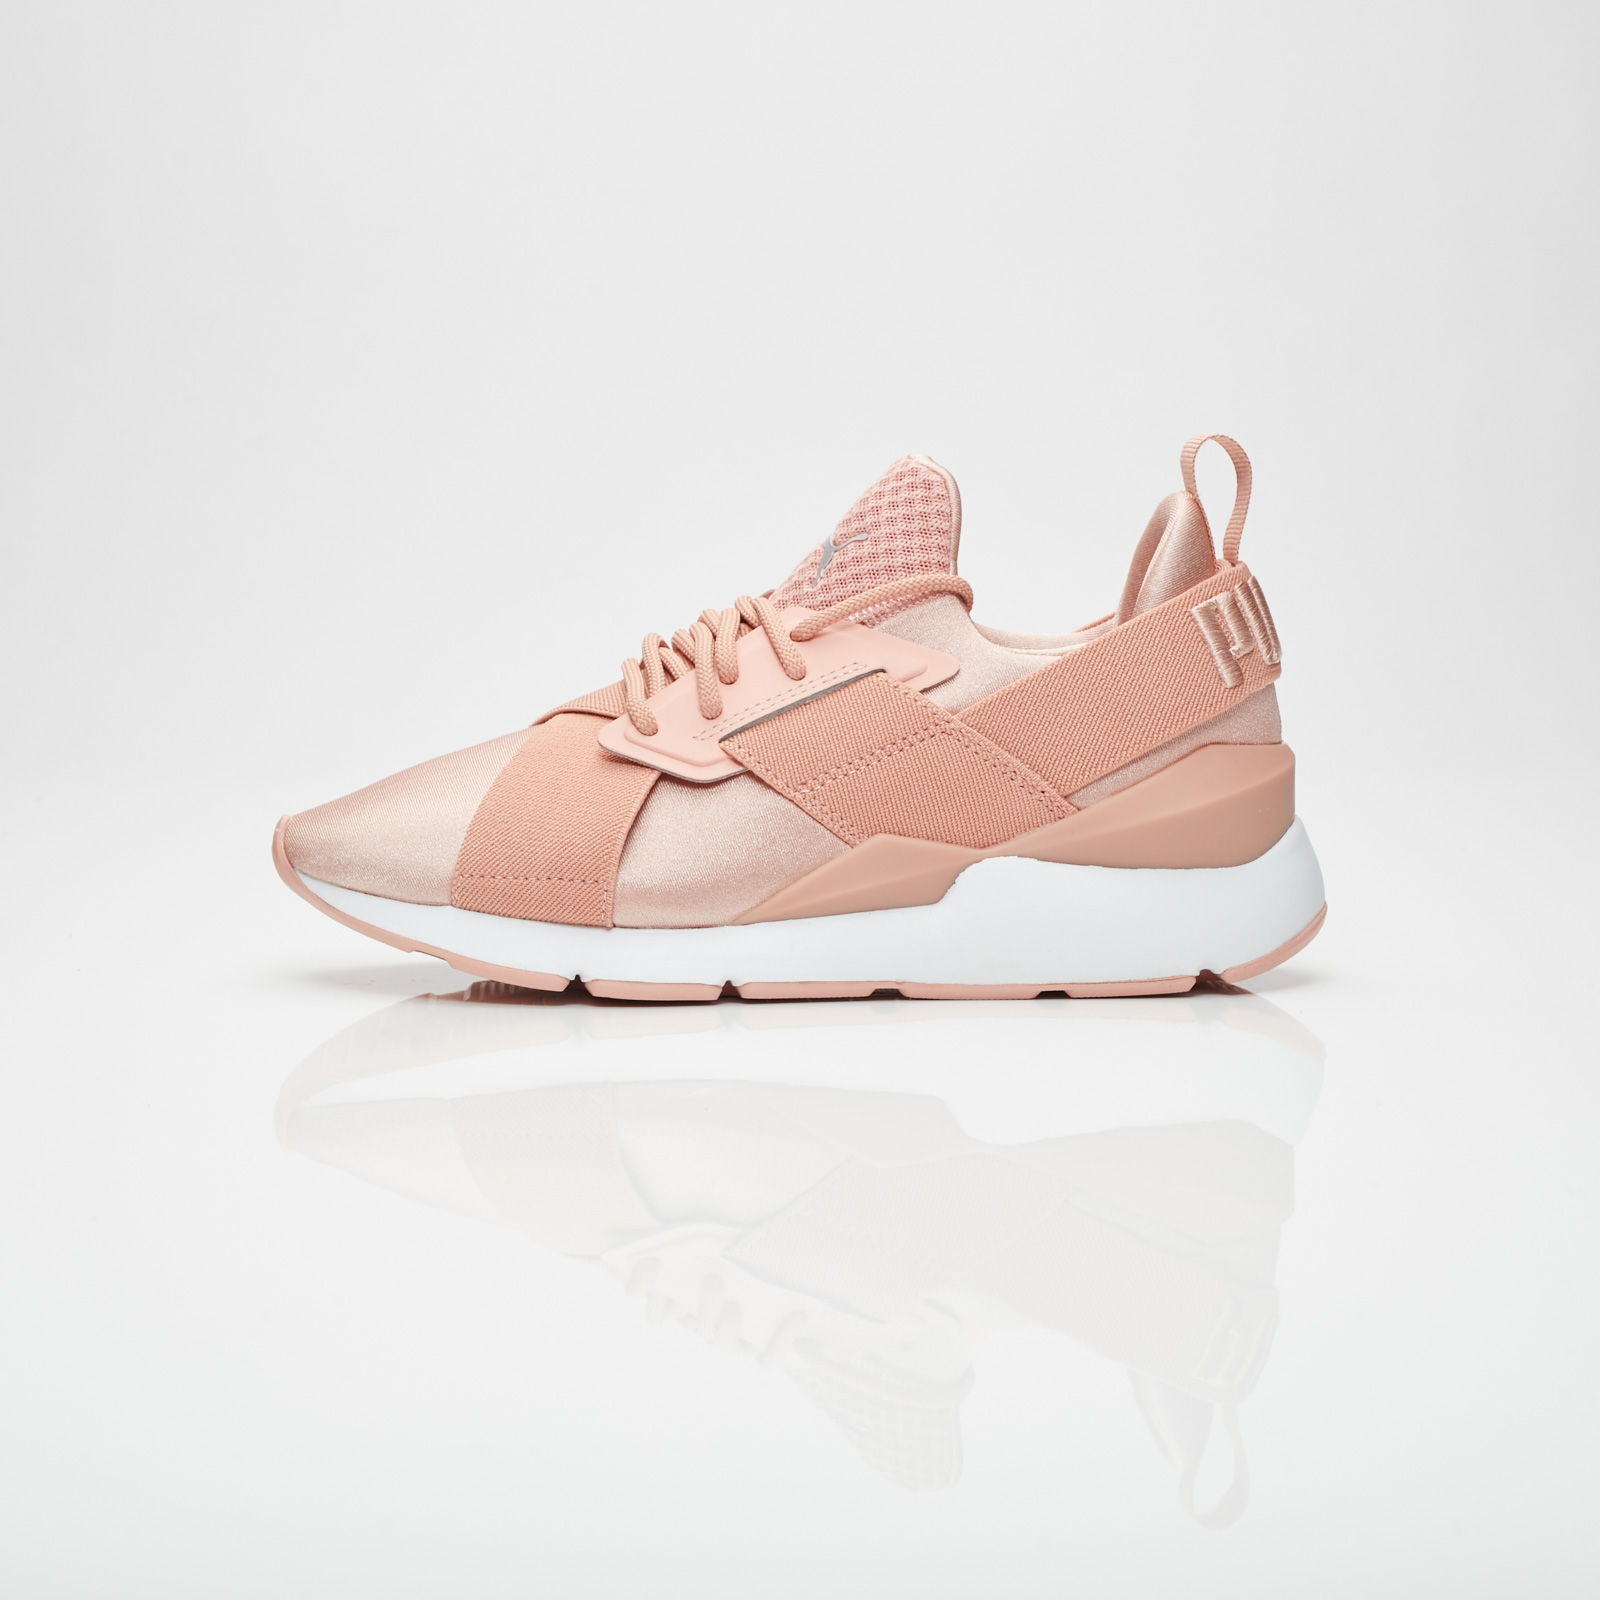 Puma Muse Satin EP Womens - 365534-01 - Sneakersnstuff  1ef57c647